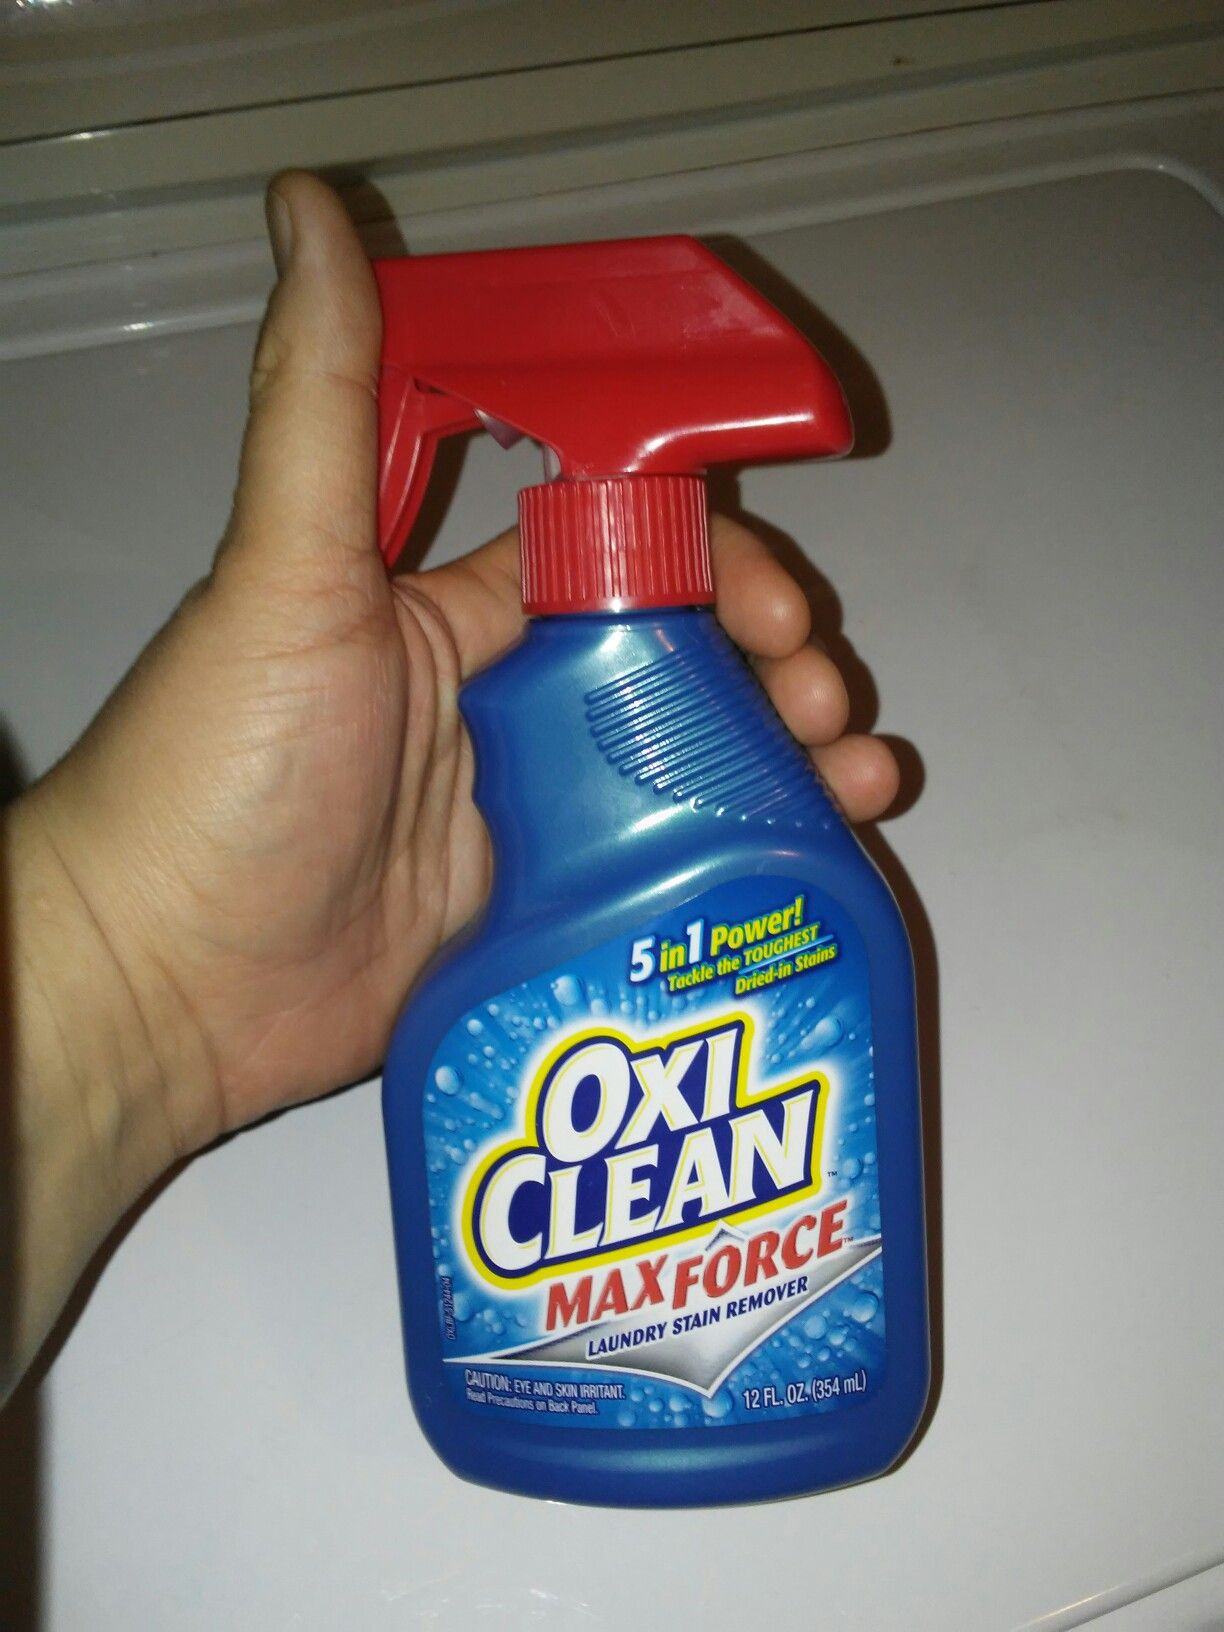 Freesample Laundry Stain Remover Stain Remover Laundry Stains